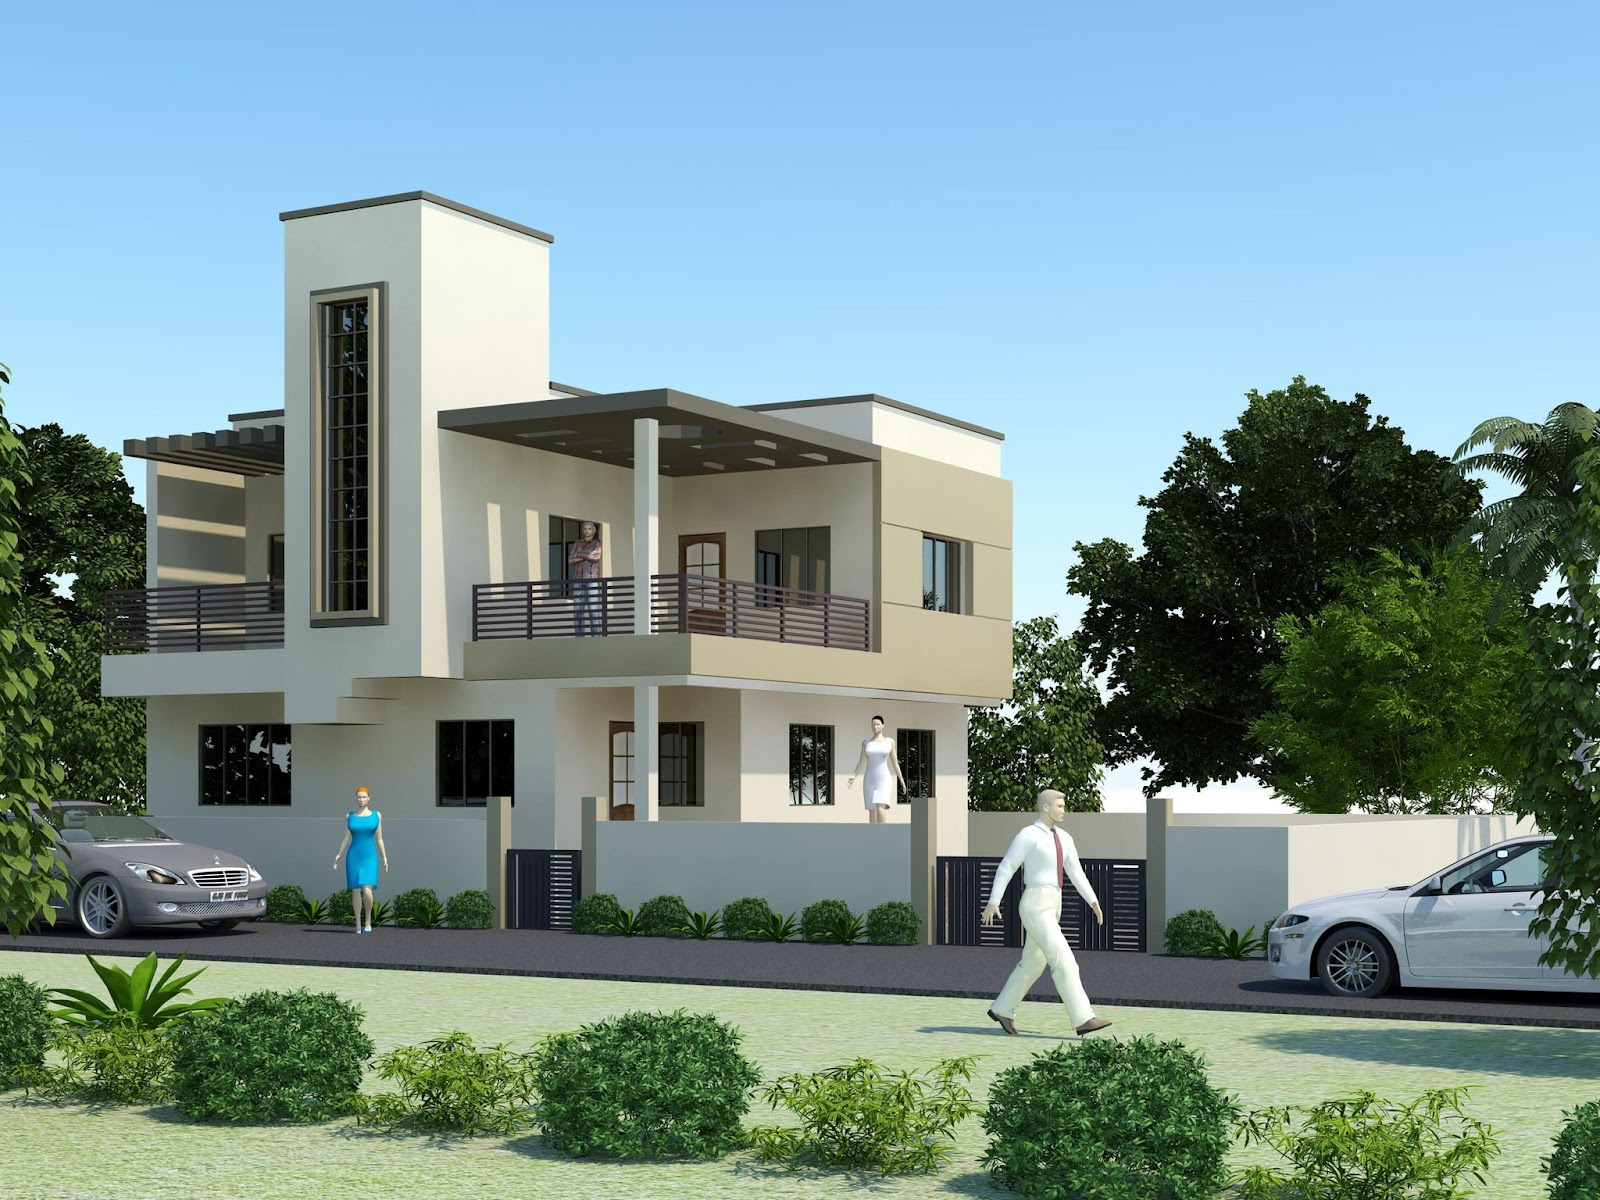 New home designs latest modern homes exterior designs for Front view house plans